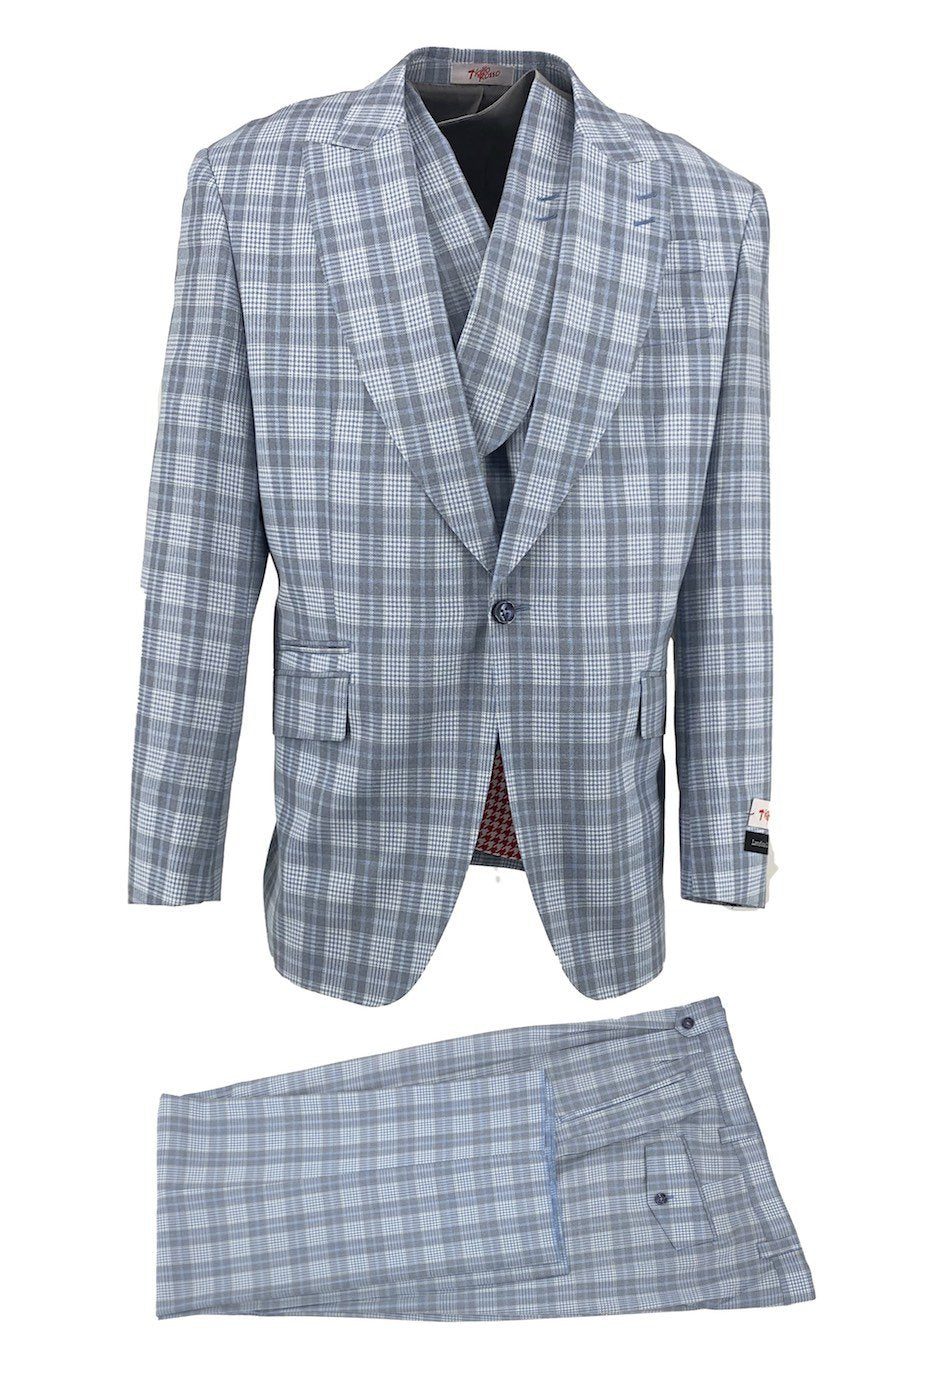 Tiglio Rosso Gray Blue with White Houndstooth New Rosso, Wide Leg Pure Wool Suit & Vest TLS20030/1